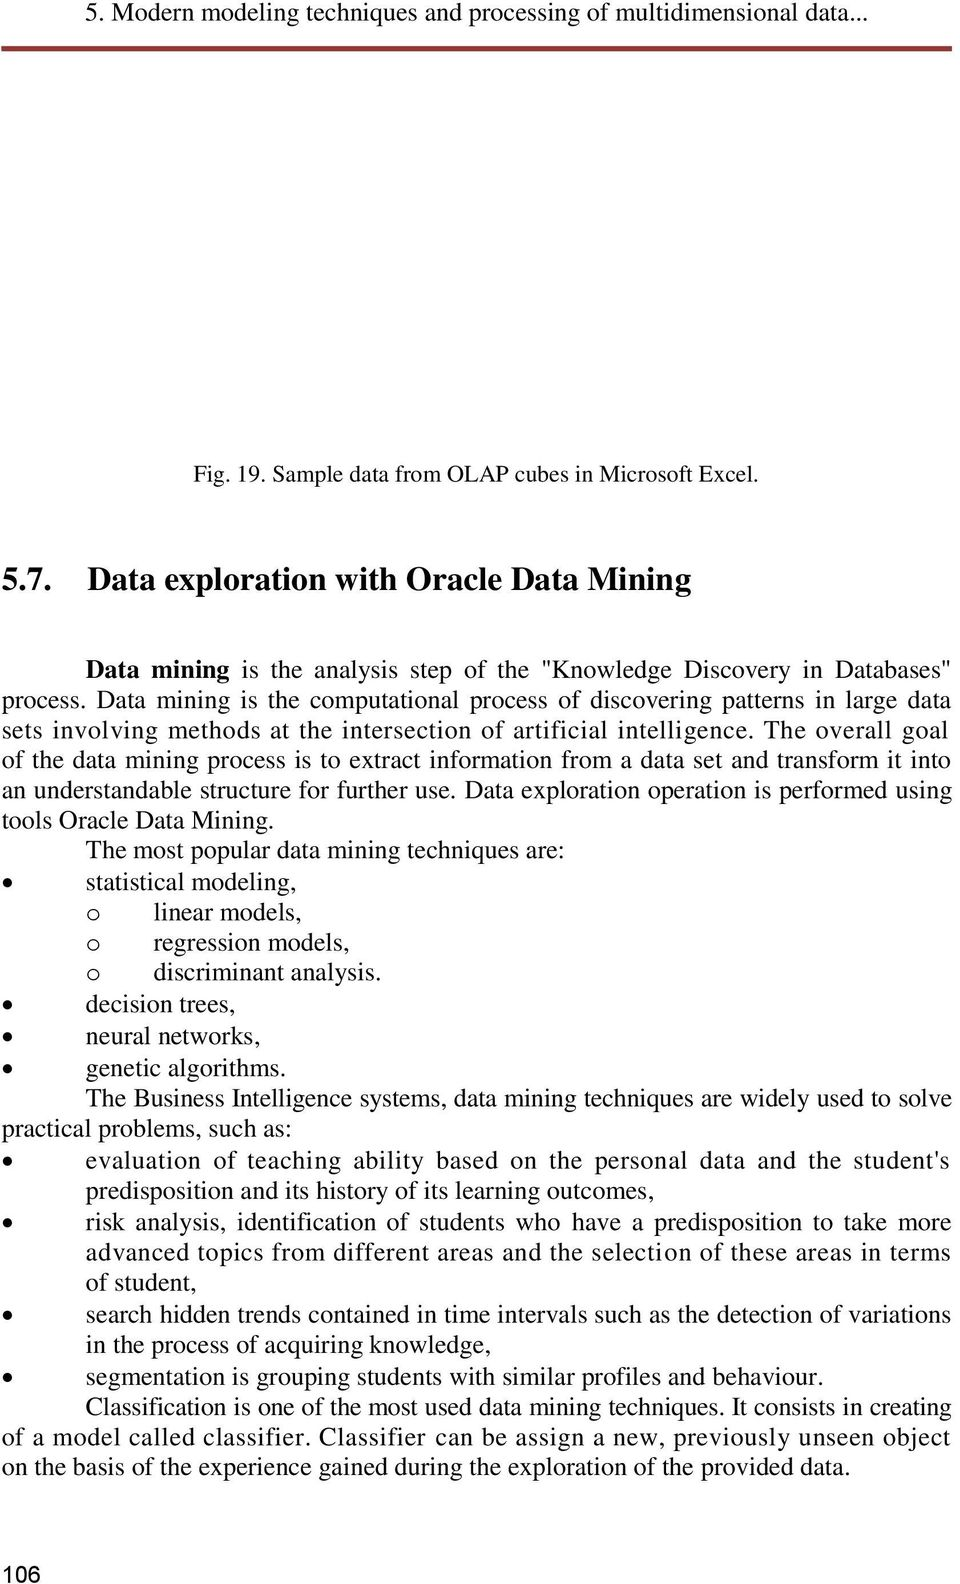 The overall goal of the data mining process is to extract information from a data set and transform it into an understandable structure for further use.